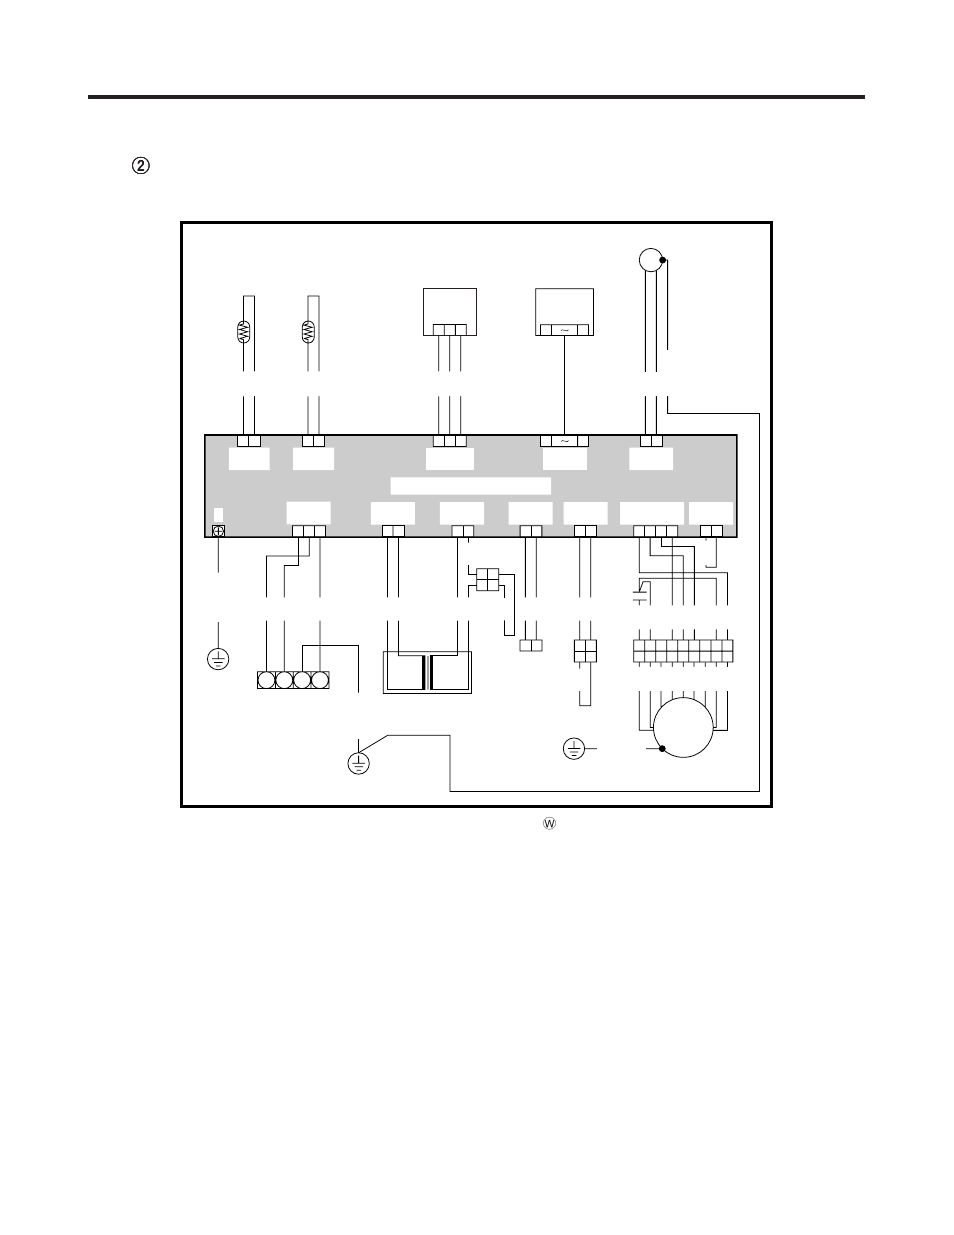 hight resolution of wrg 6273 wiring washburn diagram ss0207249 2003 mazda protege5 fuse box mazda auto wiring diagram